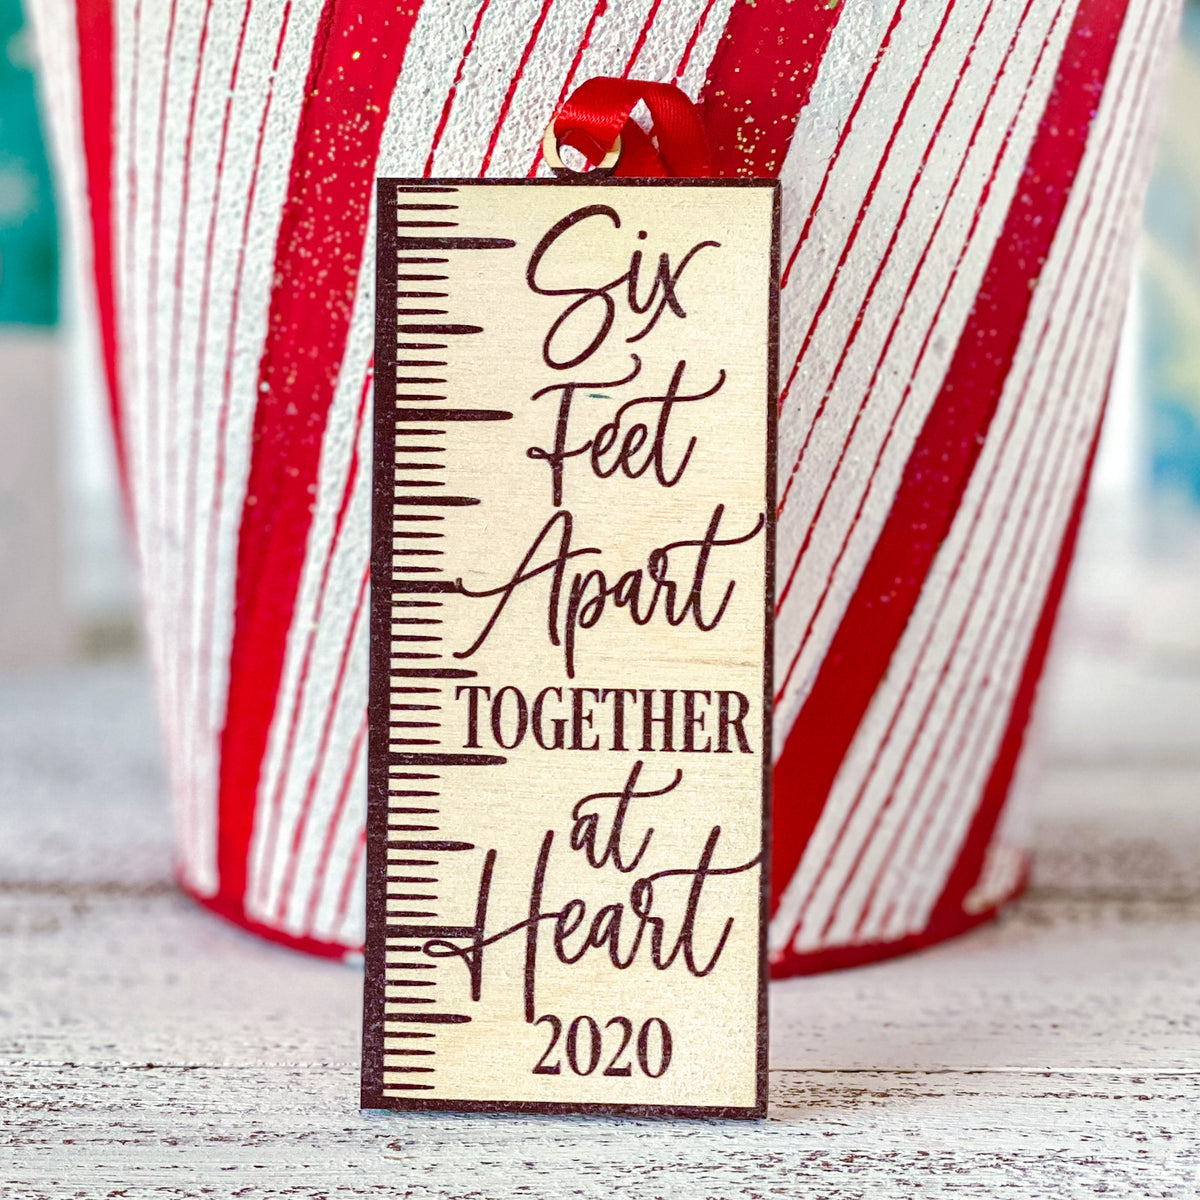 Six Feet Apart Together At Heart 2020